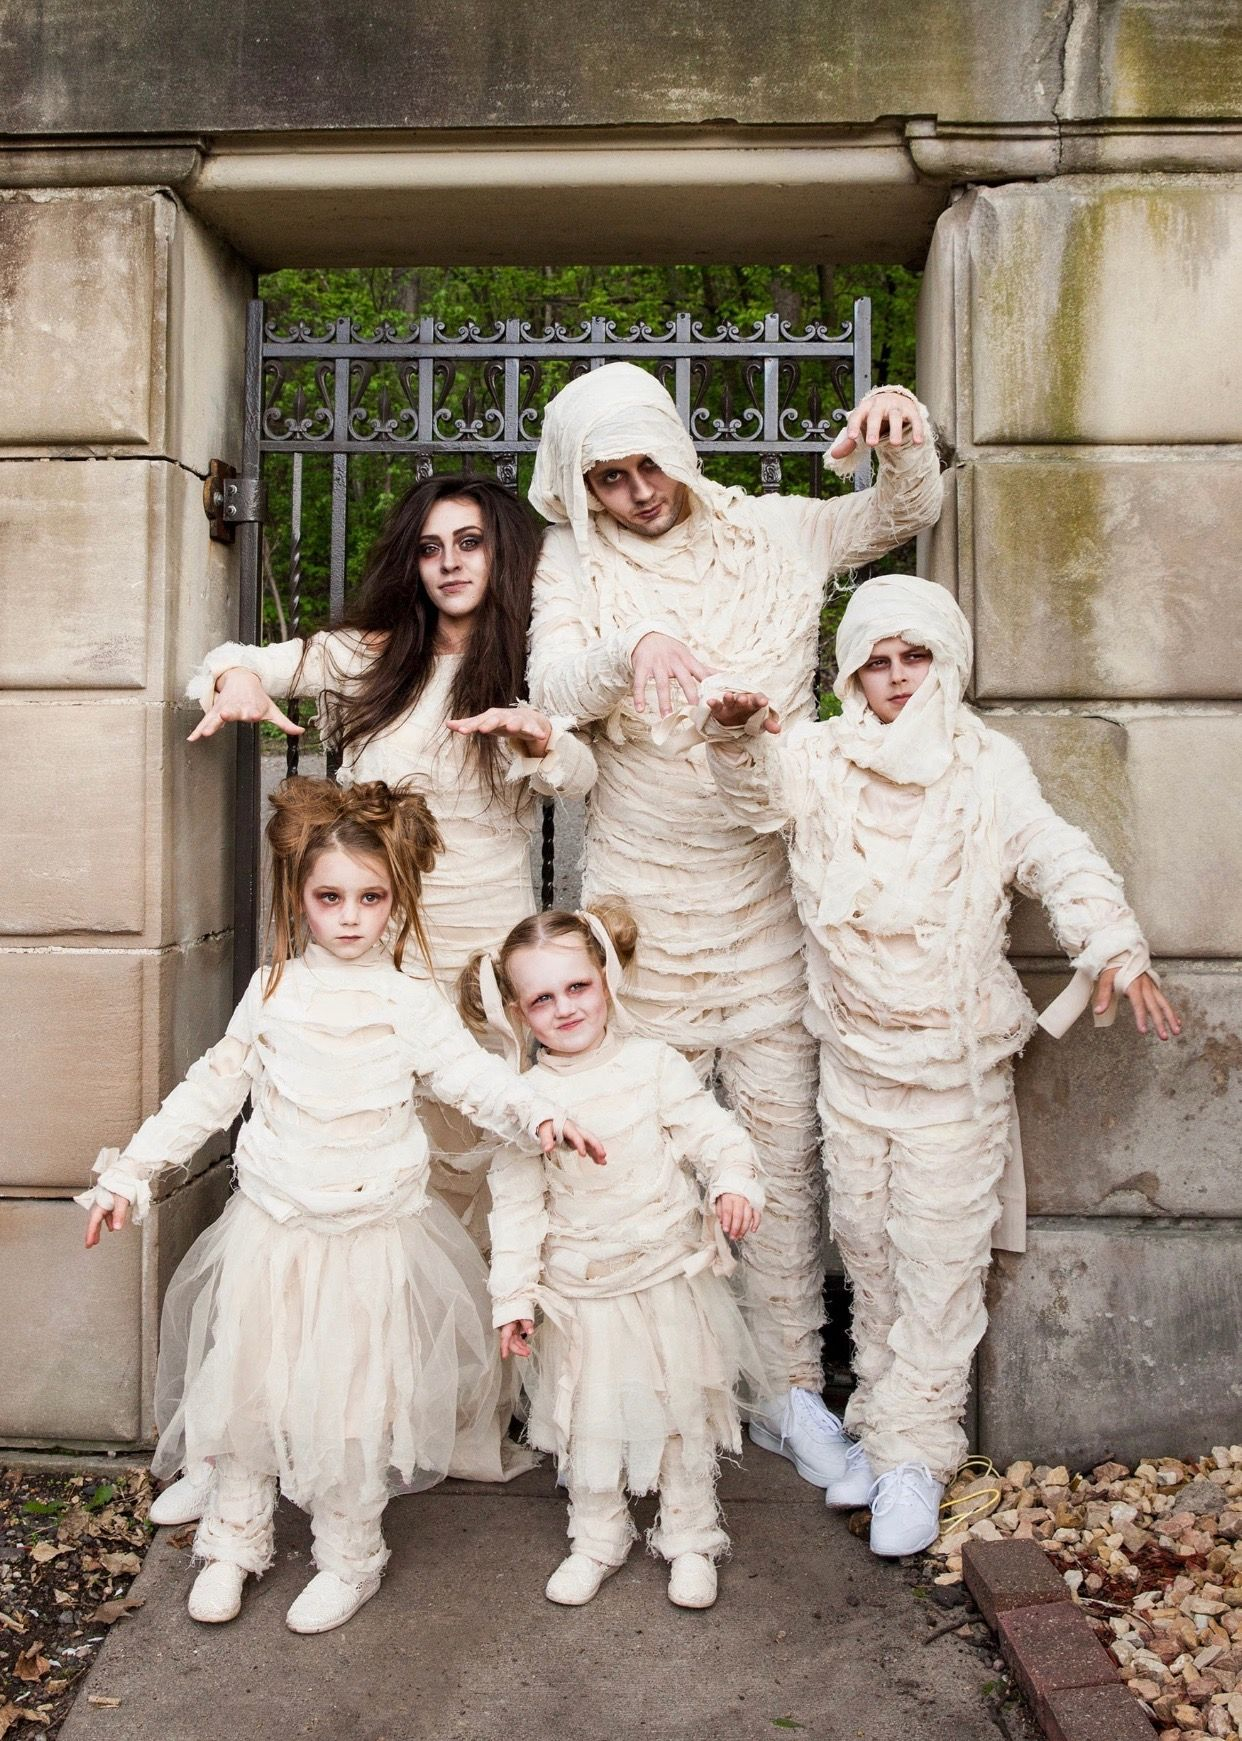 Pin by Tasia on Halloween Costumes Mummy costume women